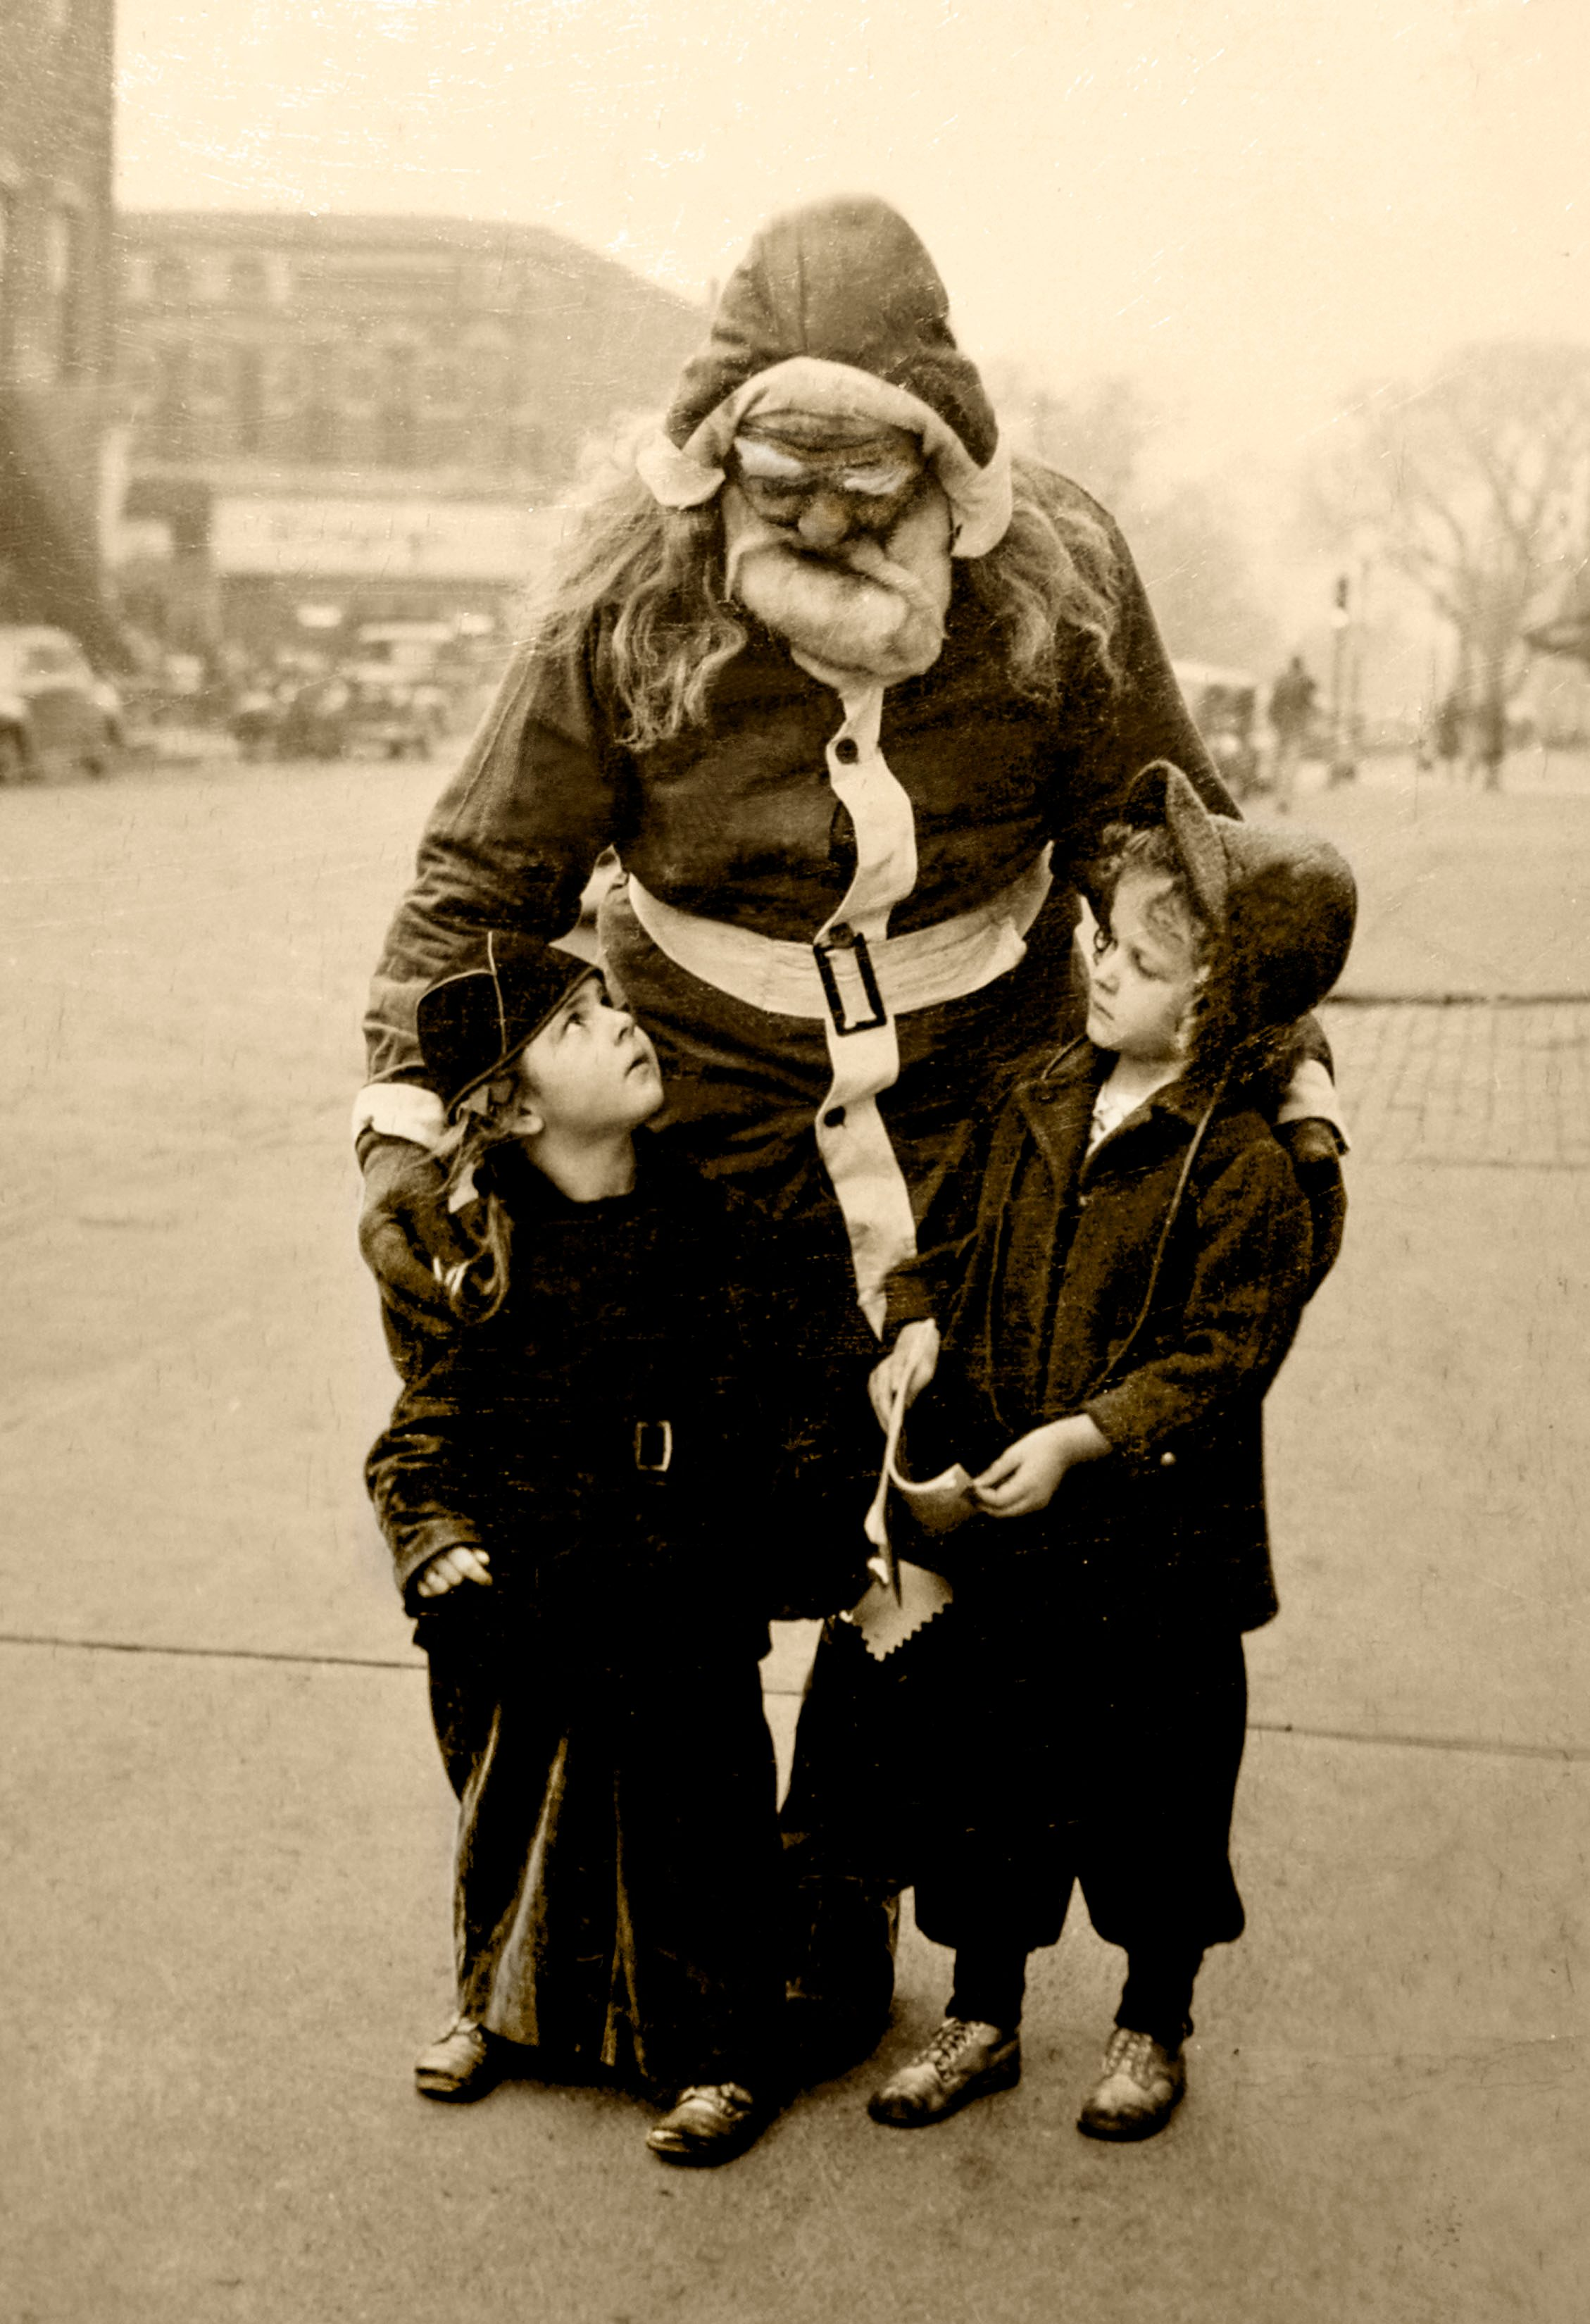 "I am originally from Ottawa, Ill., and my Grandpa Brown used to dress up as Santa and go around the neighbor hood handing out candy to the kids. I found this old photo in my family Bible and thought I would share it. Sorry, I don't know who the two young girls are with Grandpa (Santa) but perhaps someone may remember this and identify who they may be. It must have been taken around 1947-1950 as after that period, my family moved to California. The photo was in the local newspaper along with a short written piece. My Grandpa Brown was a business man in the 30's and 40's in Ottawa. The article went like this: ""Santa Claus has made his last round in the Northwest section of Ottawa but the small frys of the District are confident that someone will replace him and his manner will be as jolly, his supply of candy as ample and his handshake as hearty as that of the Santa Claus who will not be on hand again this year. The real Santa Claus in this area was Edward D. Brown, a big man with a heart to match. He died this past month. For 20 years come Christmas, Brown found funds to buy candy for the small ones of the area, put on his suit and go north on his rounds. He was a neighborhood tradition."